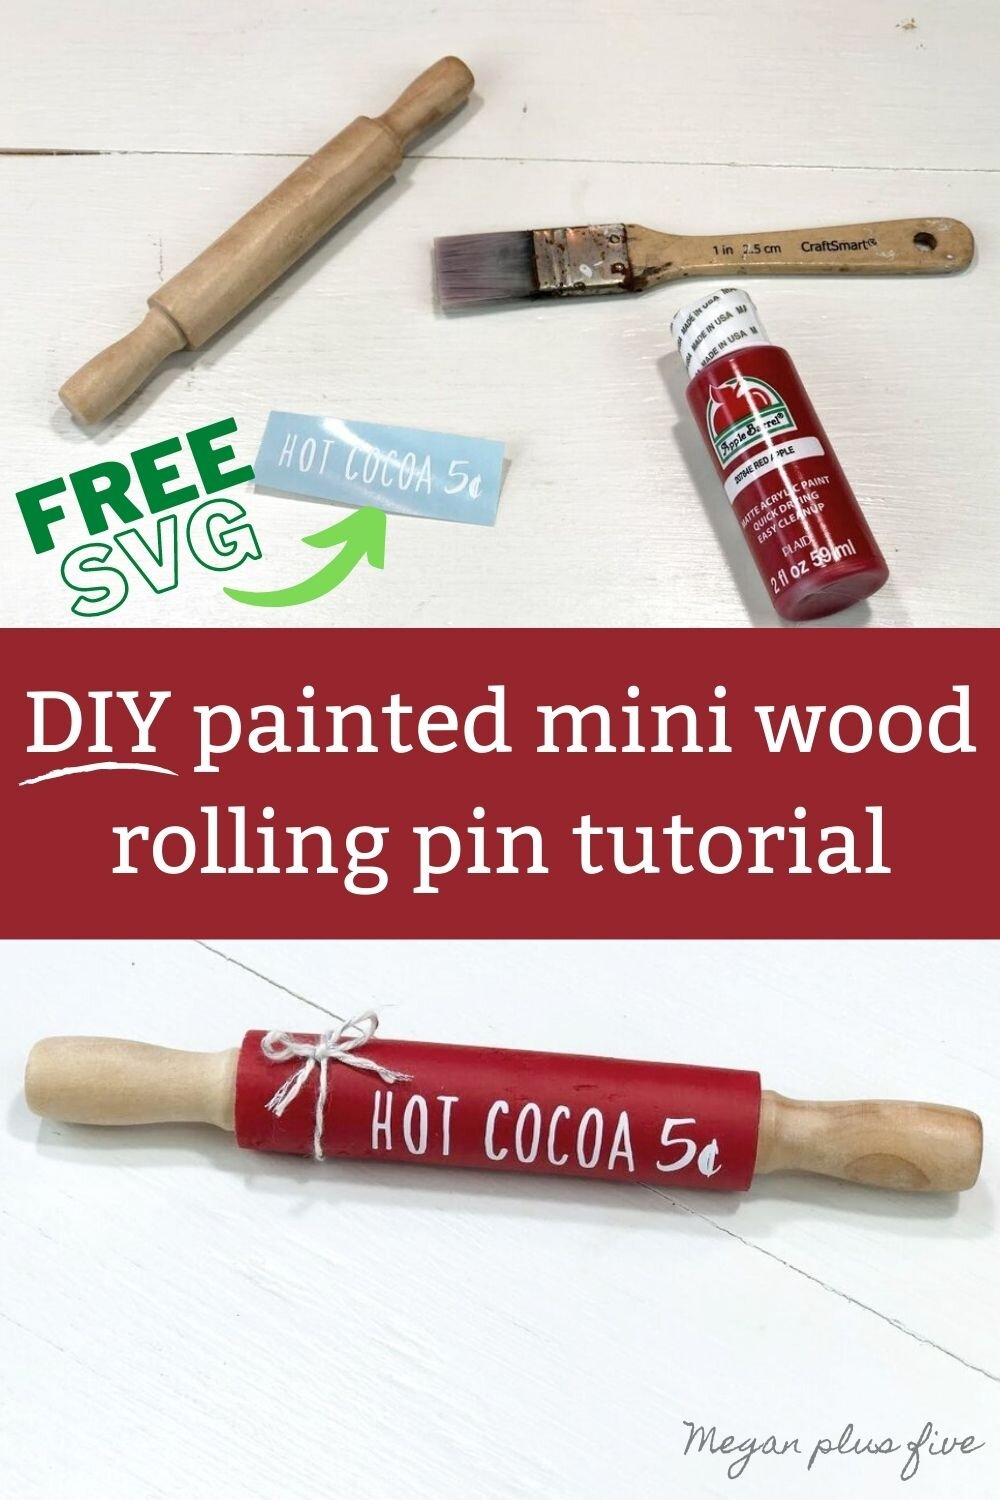 DIY mini wood rolling pin for tiered tray decorations for winter. How to make a hot cocoa themed coffee bar mini rolling pin accent plus free SVG. Make a painted wooden rolling pin for your rustic farmhouse home decor.